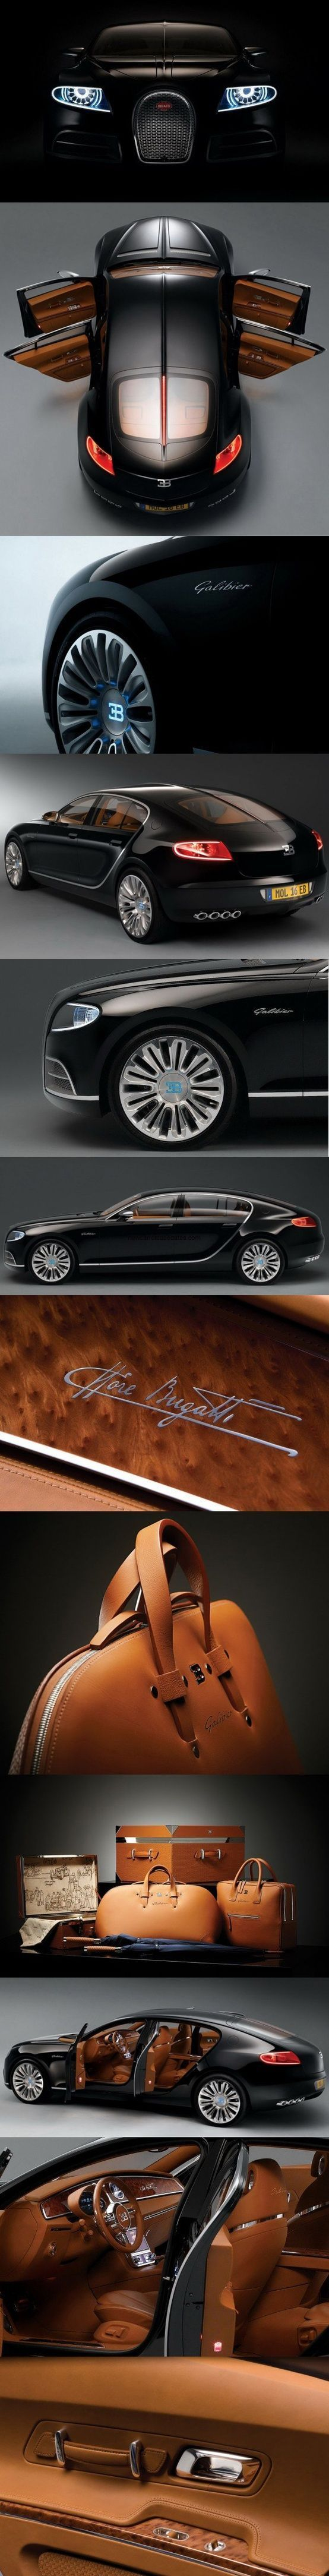 25 best ideas about bugatti motorcycle on pinterest bugatti speed bugatti concept and. Black Bedroom Furniture Sets. Home Design Ideas